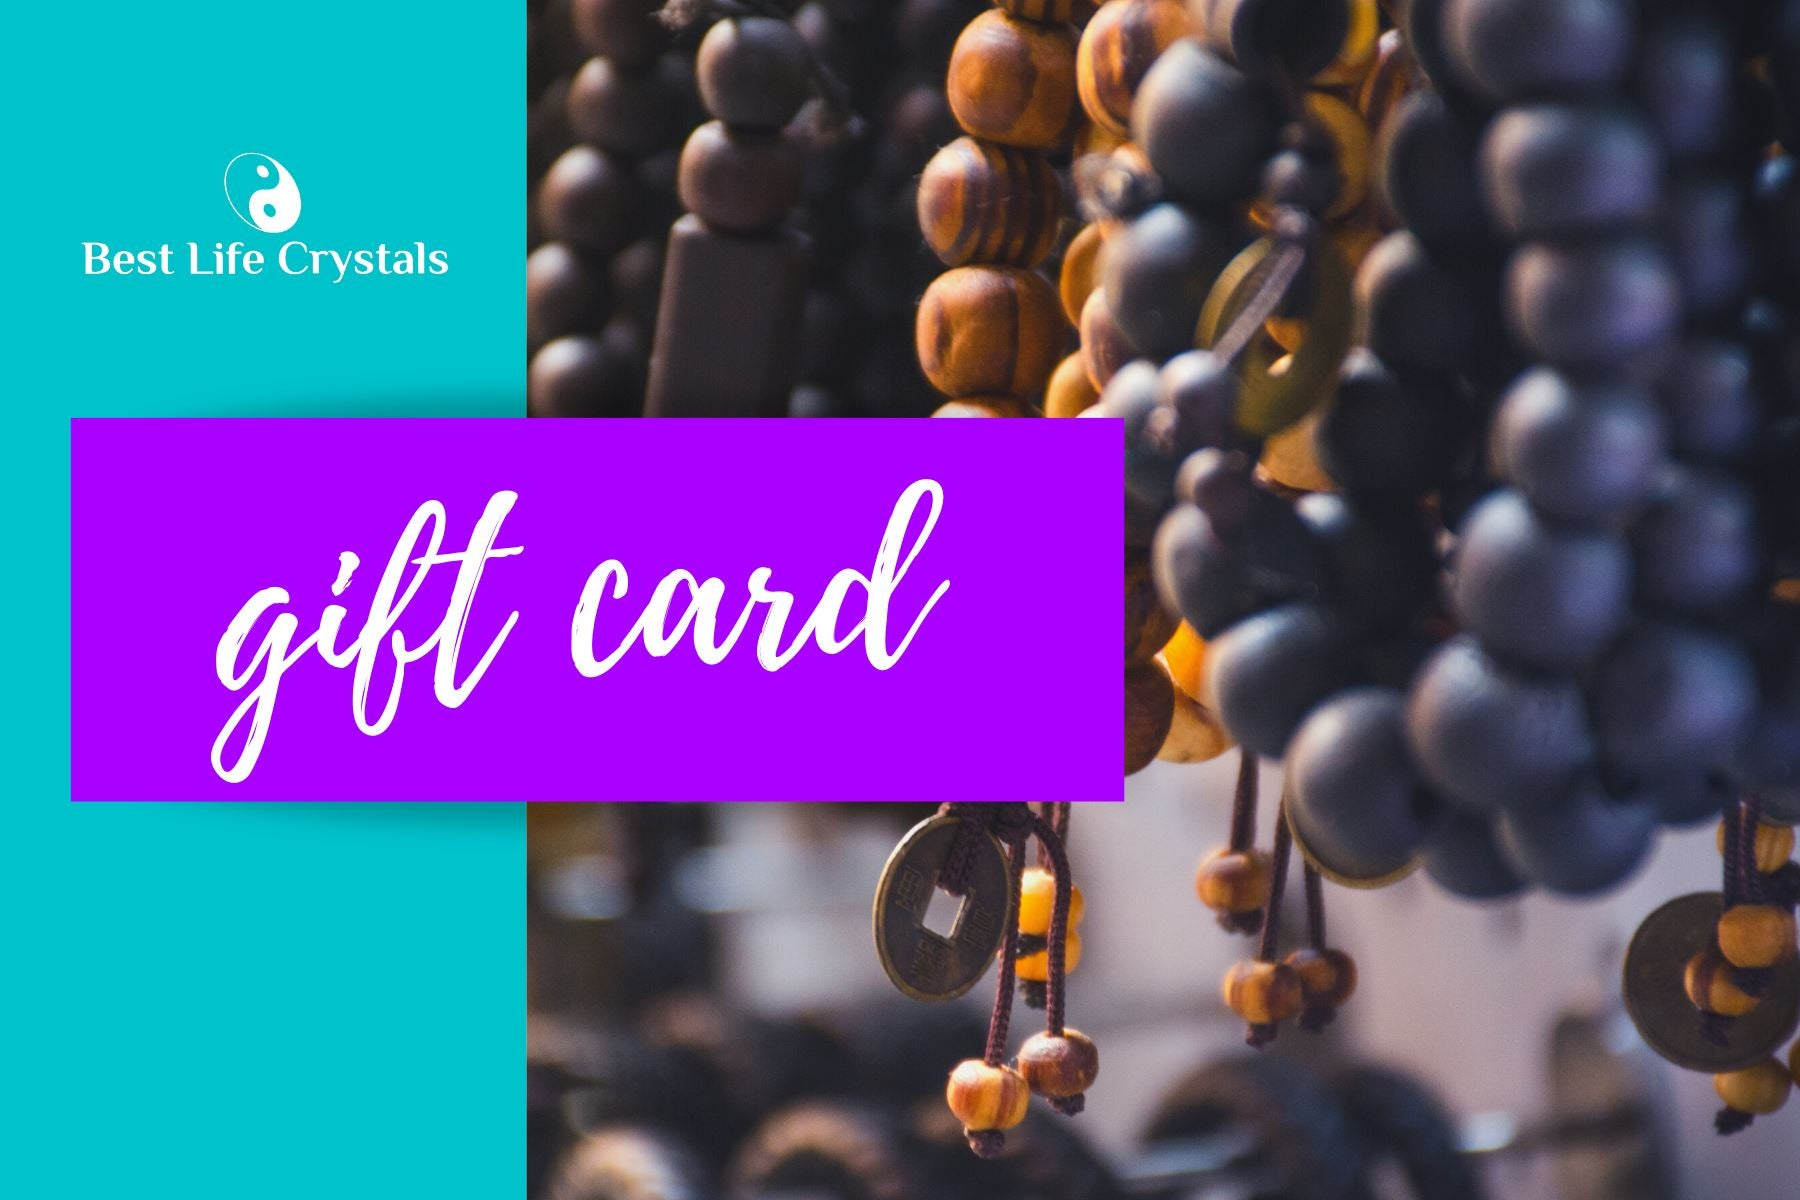 Best Life Crystals Gift Card $25 - Best Life Crystals